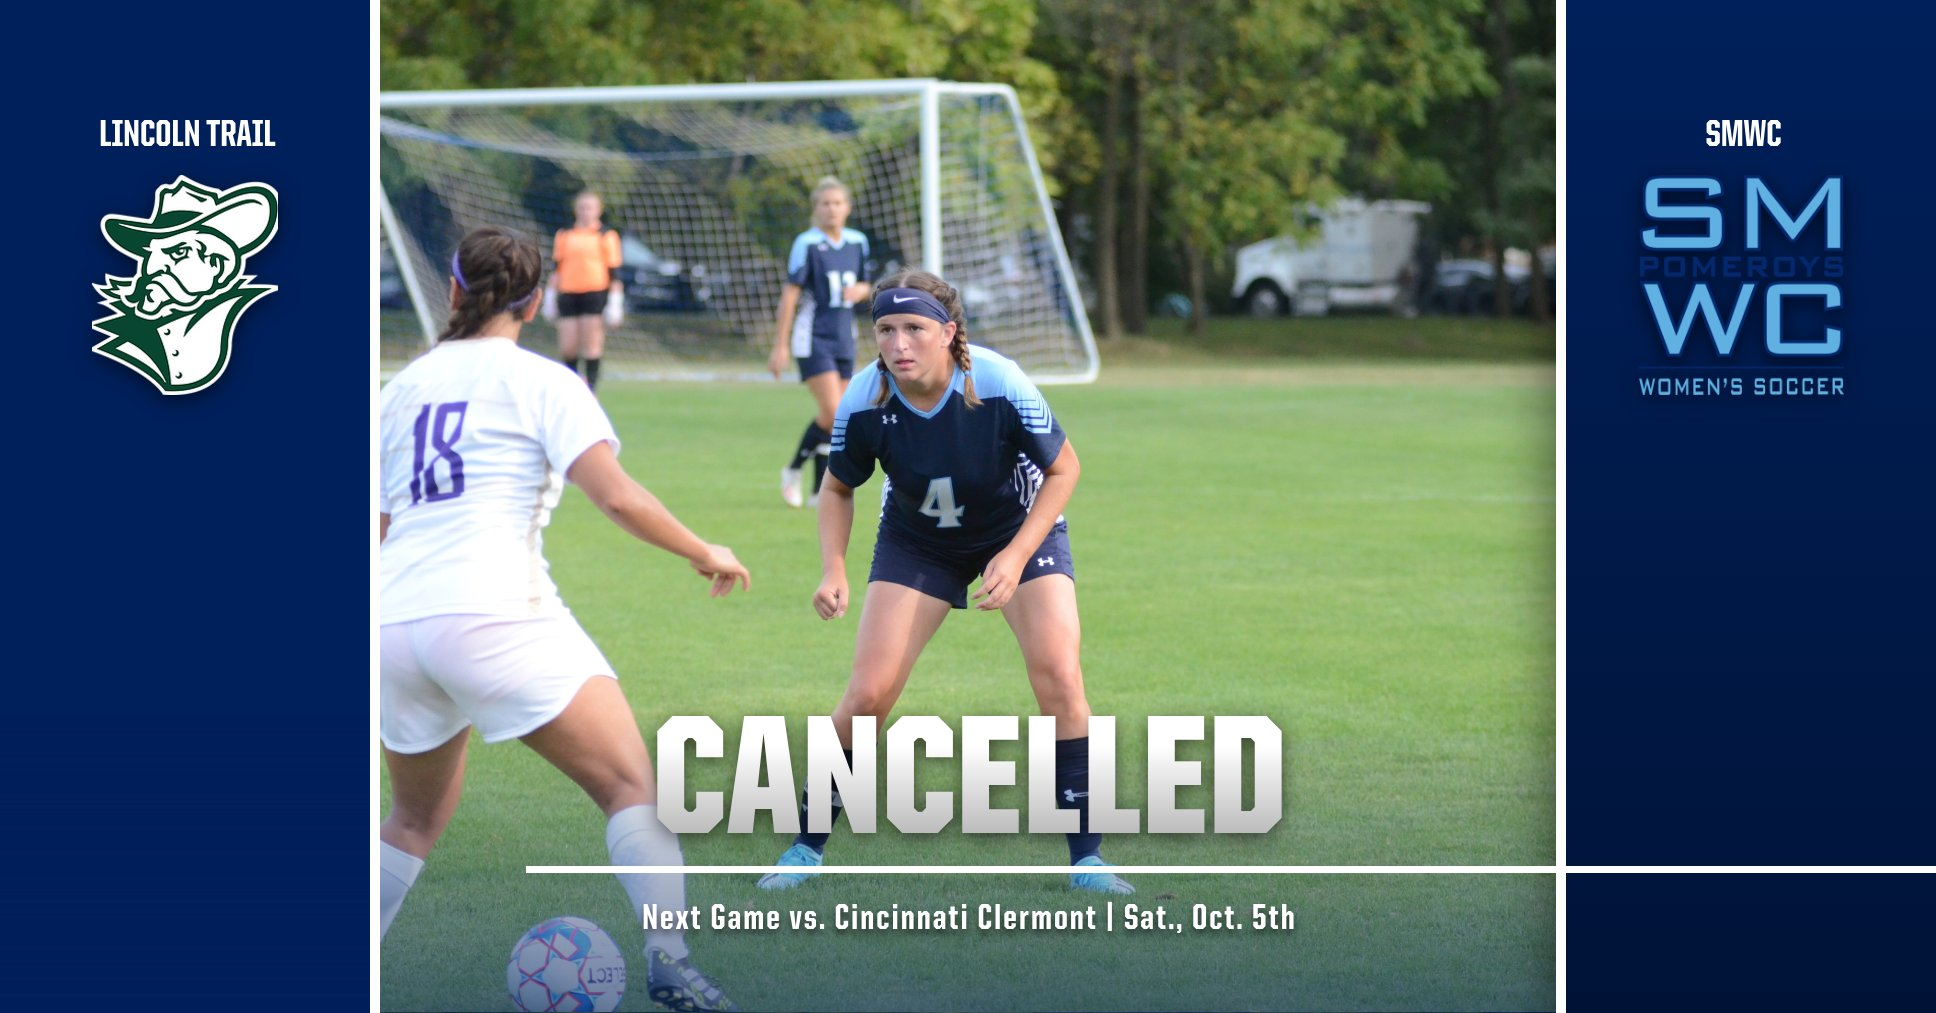 Women's Soccer Match vs. Lincoln Trail College Has Been Cancelled